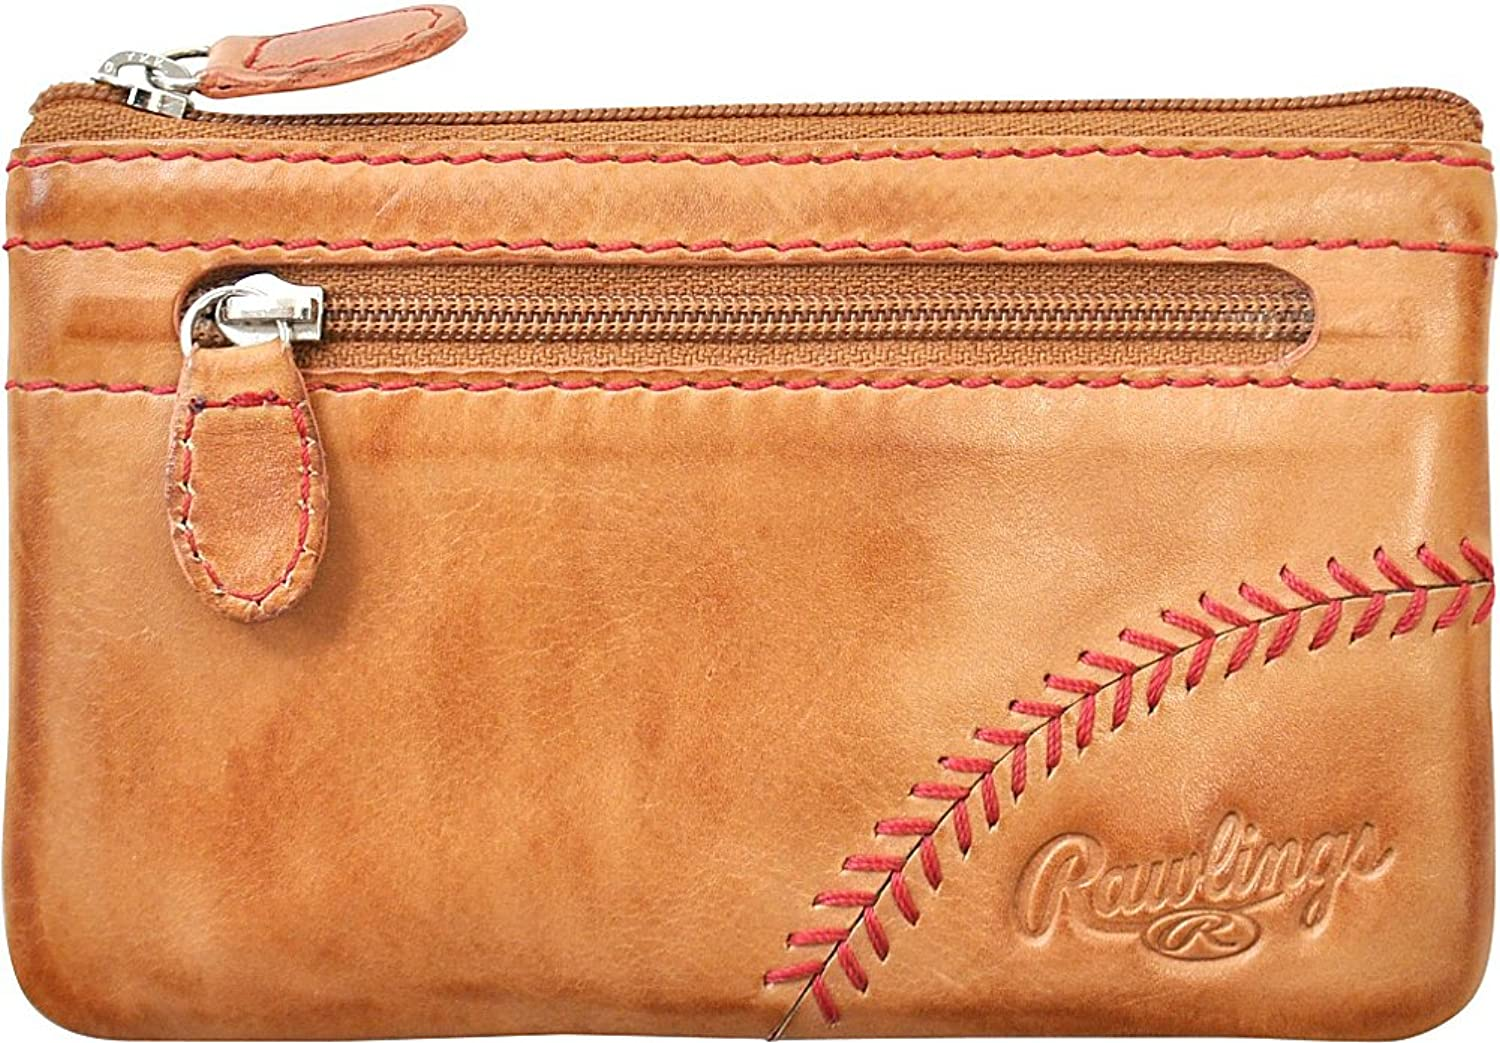 Rawlings Baseball Stitch Pouch With Credit Card Insert